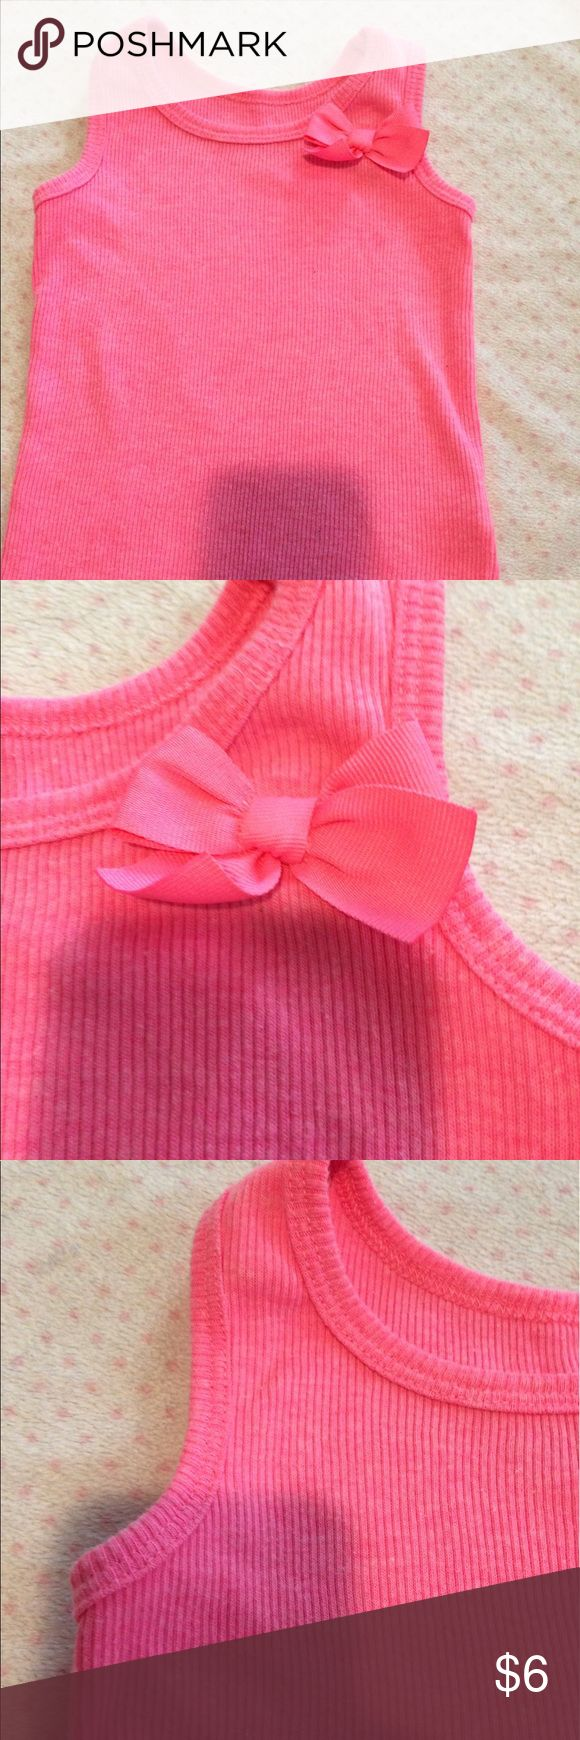 Pink tank top Pink tank top with bow on the side. Worn once in great condition. Carter's Shirts & Tops Tank Tops